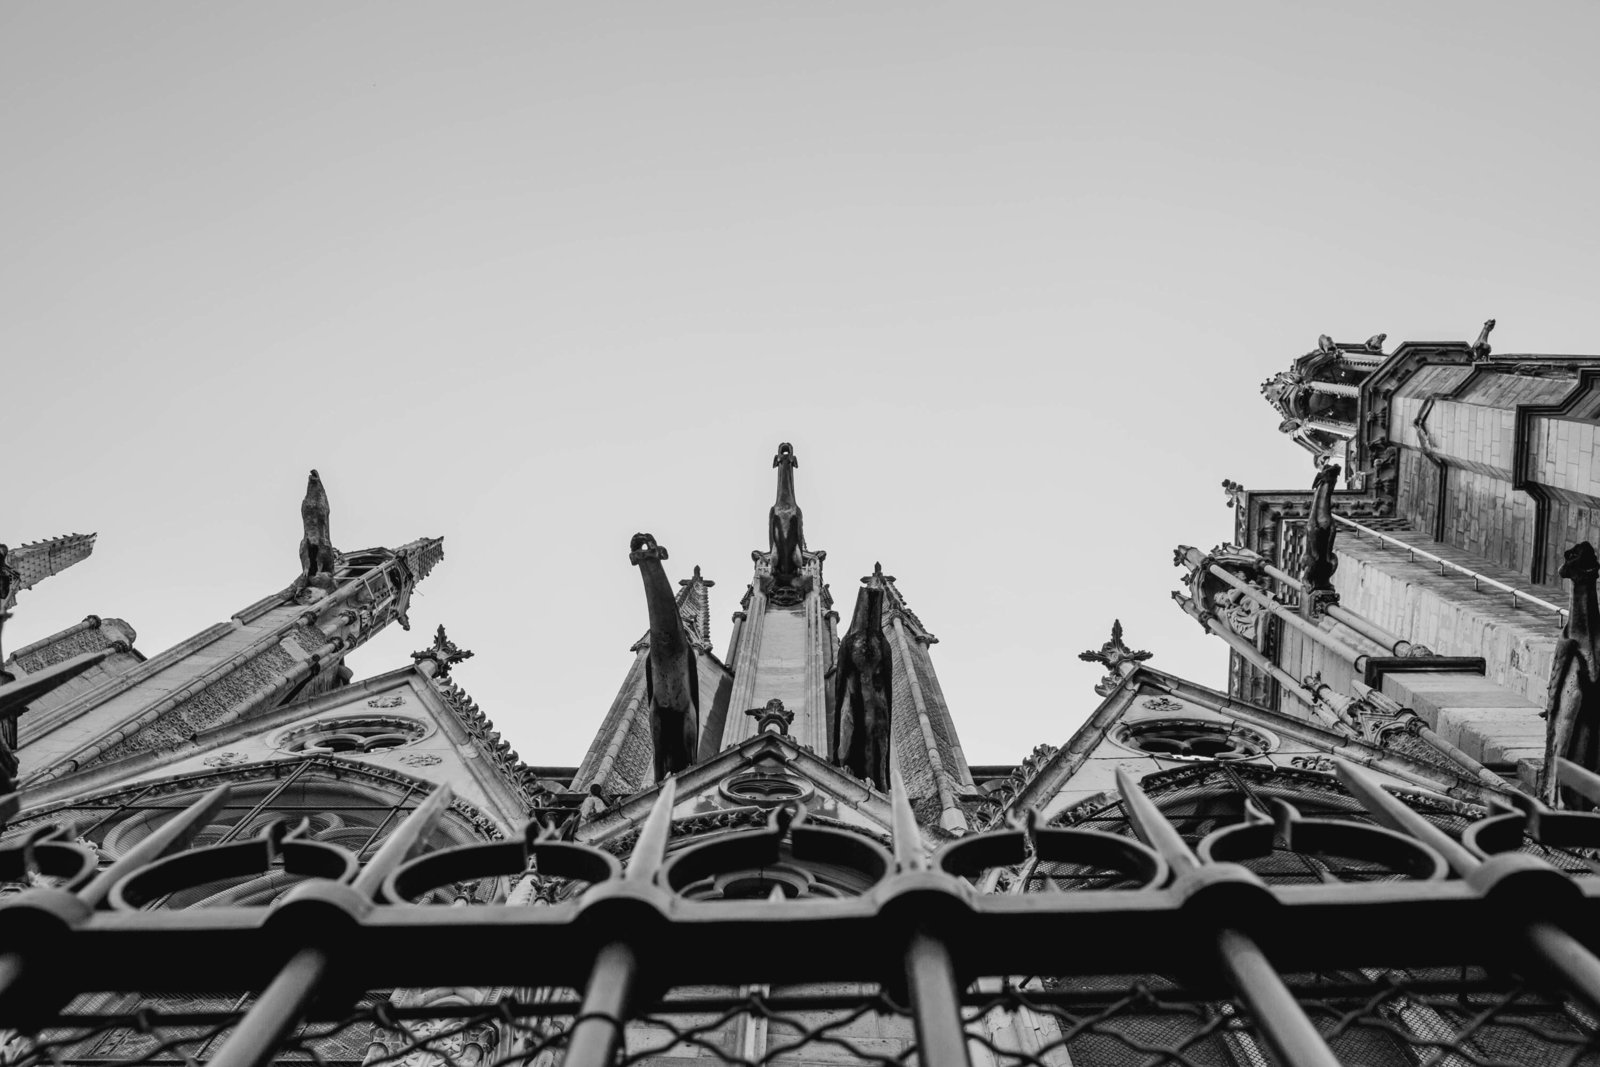 notre-dame-paris-france-travel-destination-wedding-kate-timbers-photography-1931